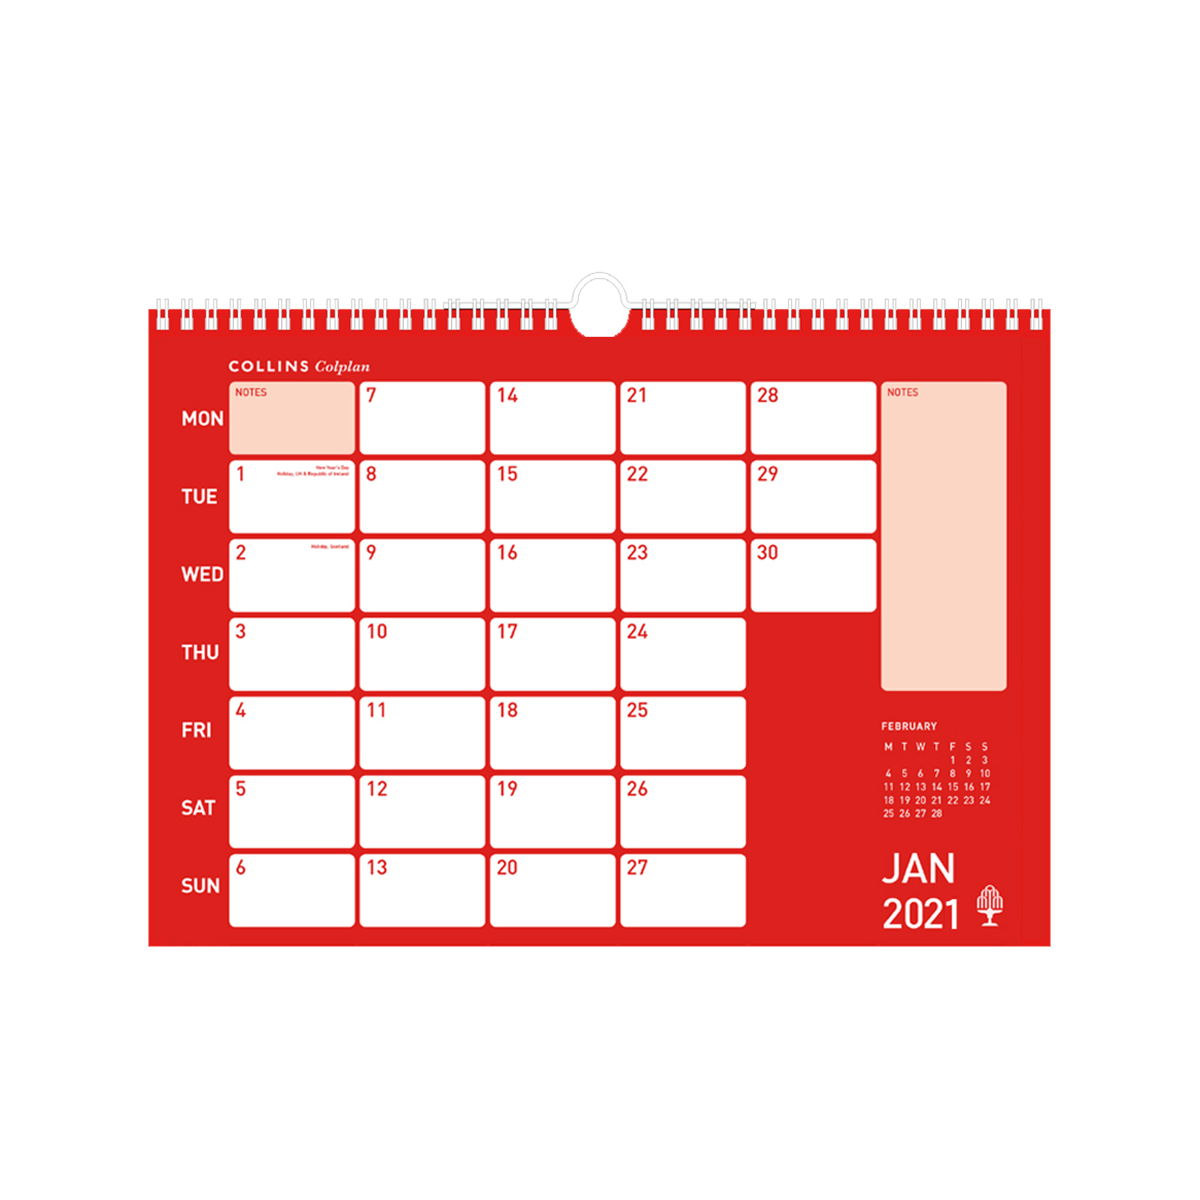 Planners Collins Colplan 2021 Colplan Memo Calendar Month to View Landscape 297x420mm Assorted Ref CMC 2021